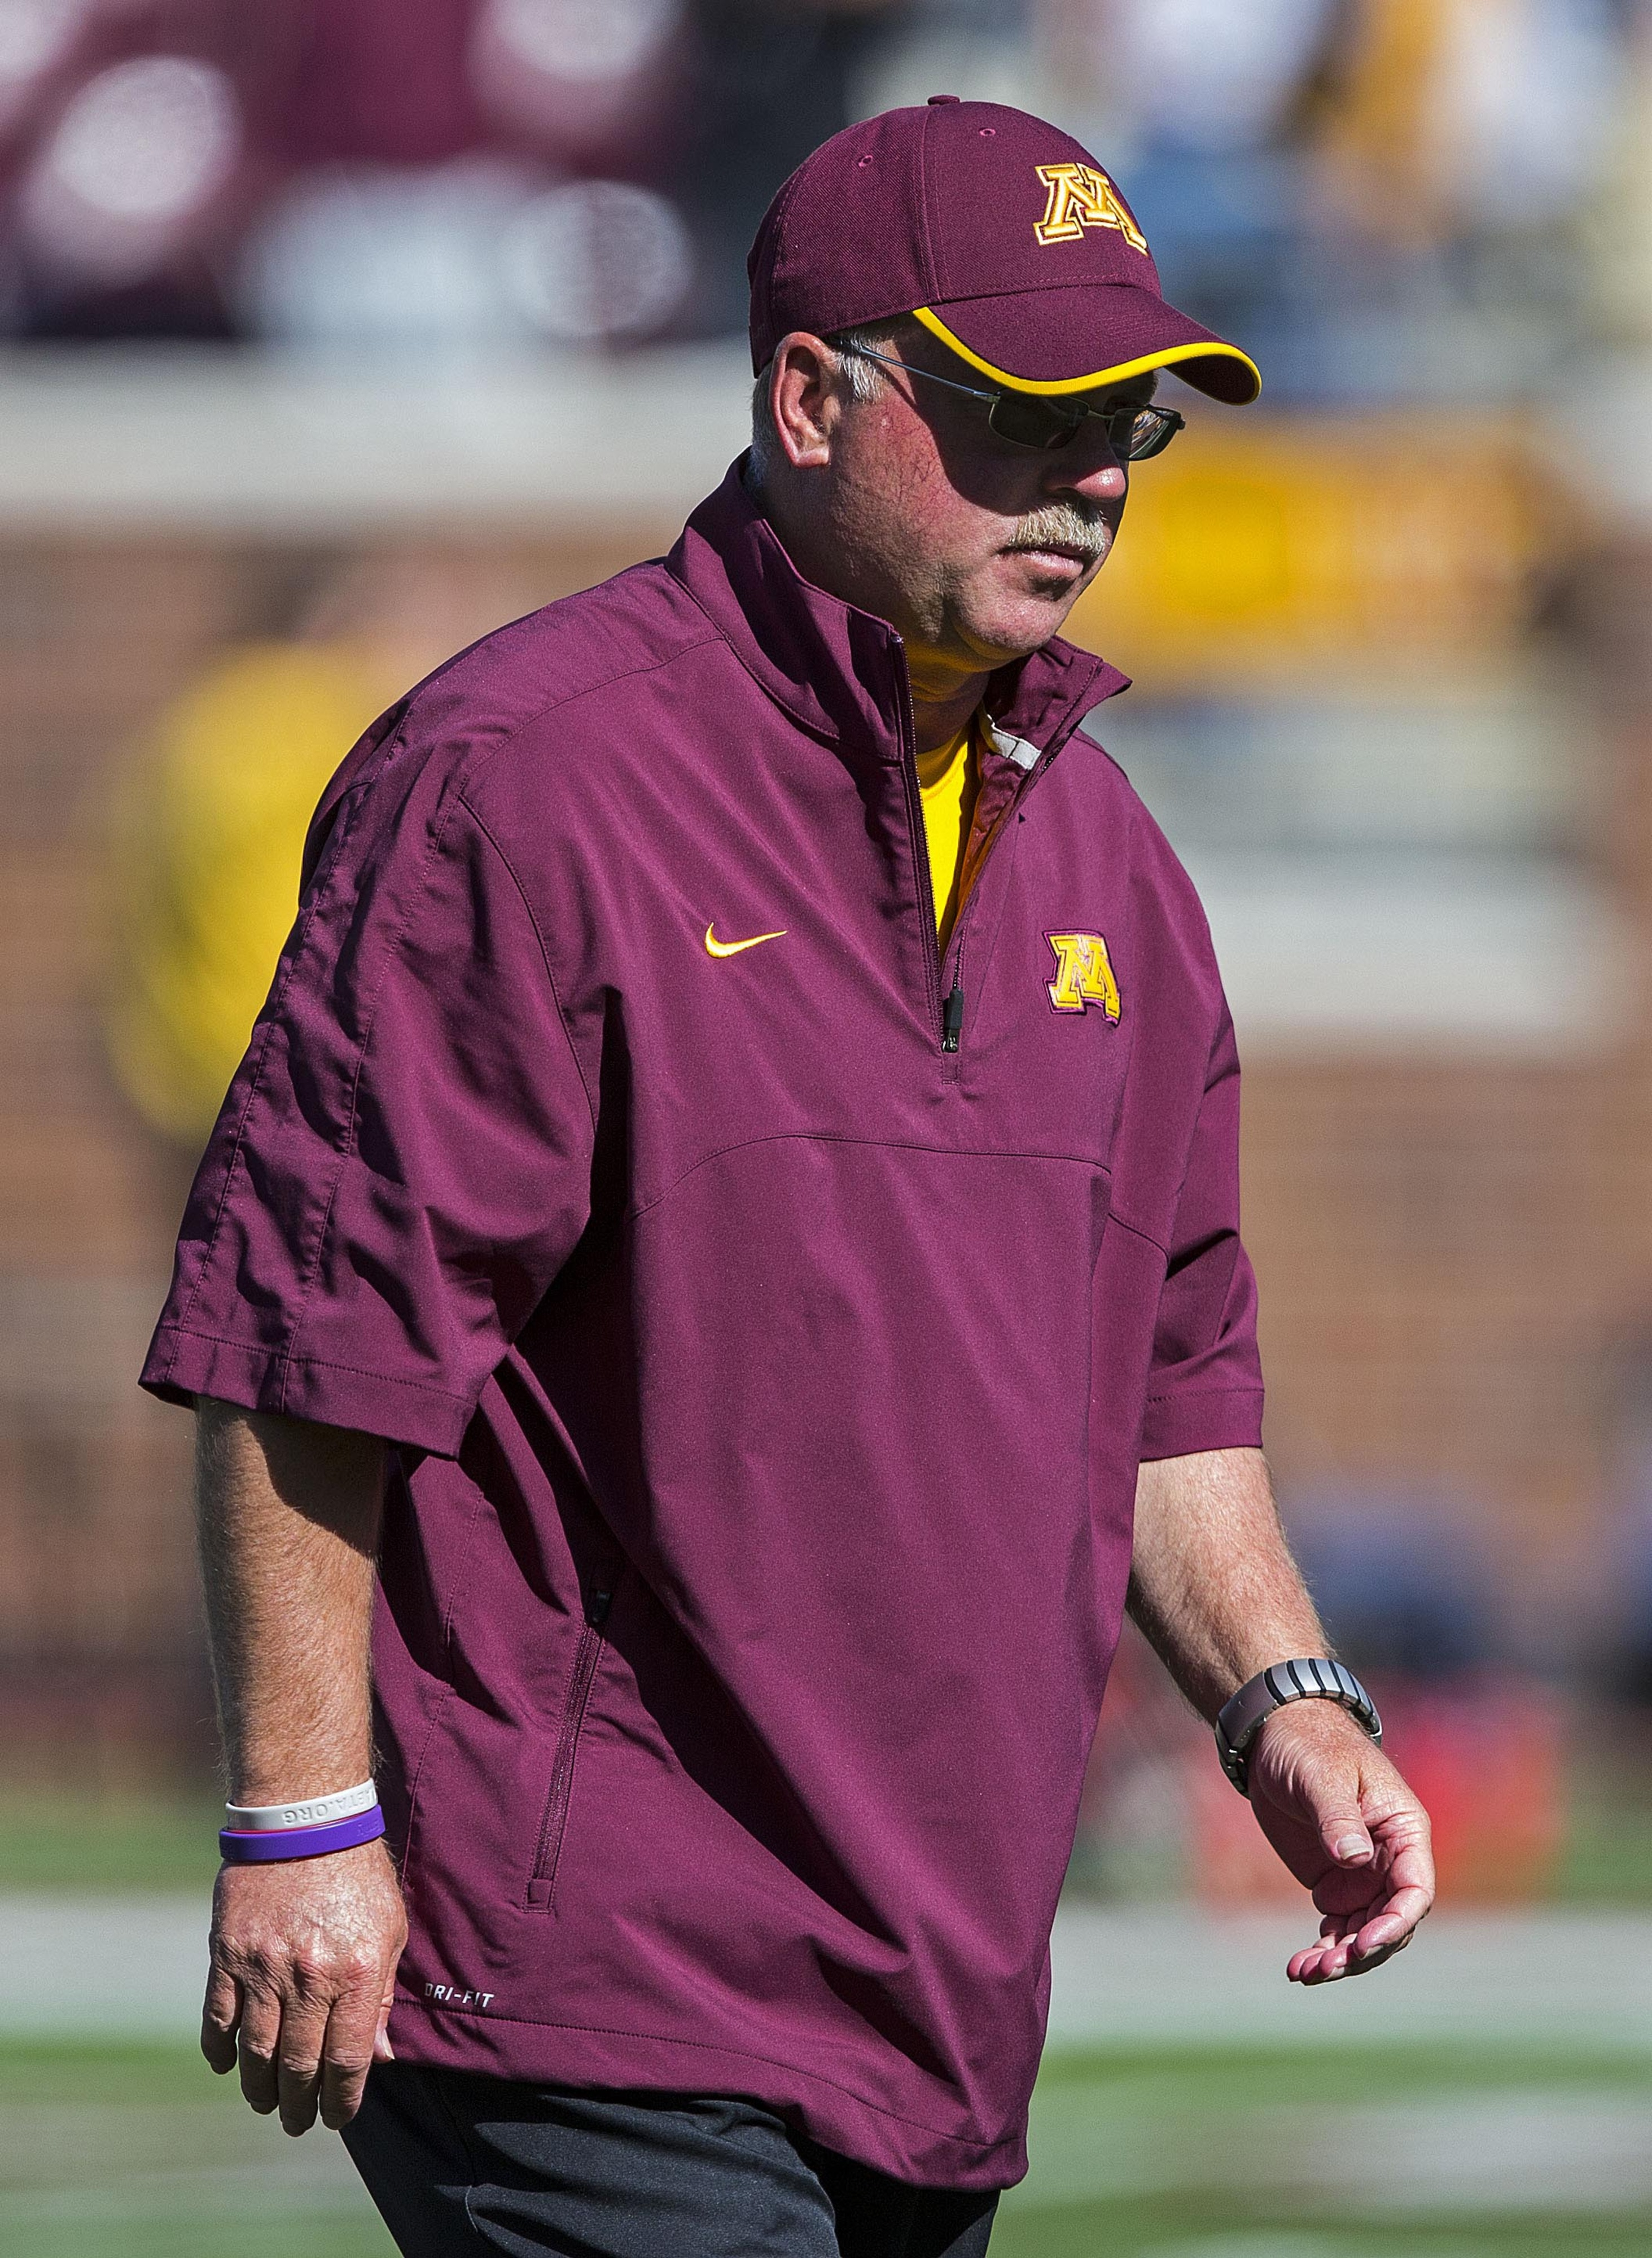 Sept 8, 2012; Minneapolis, MN, USA: Minnesota Gophers head coach Jerry Kill walks off the field before a game against the New Hampshire Wildcats at TCF Bank Stadium. Mandatory Credit: Jesse Johnson-US PRESSWIRE